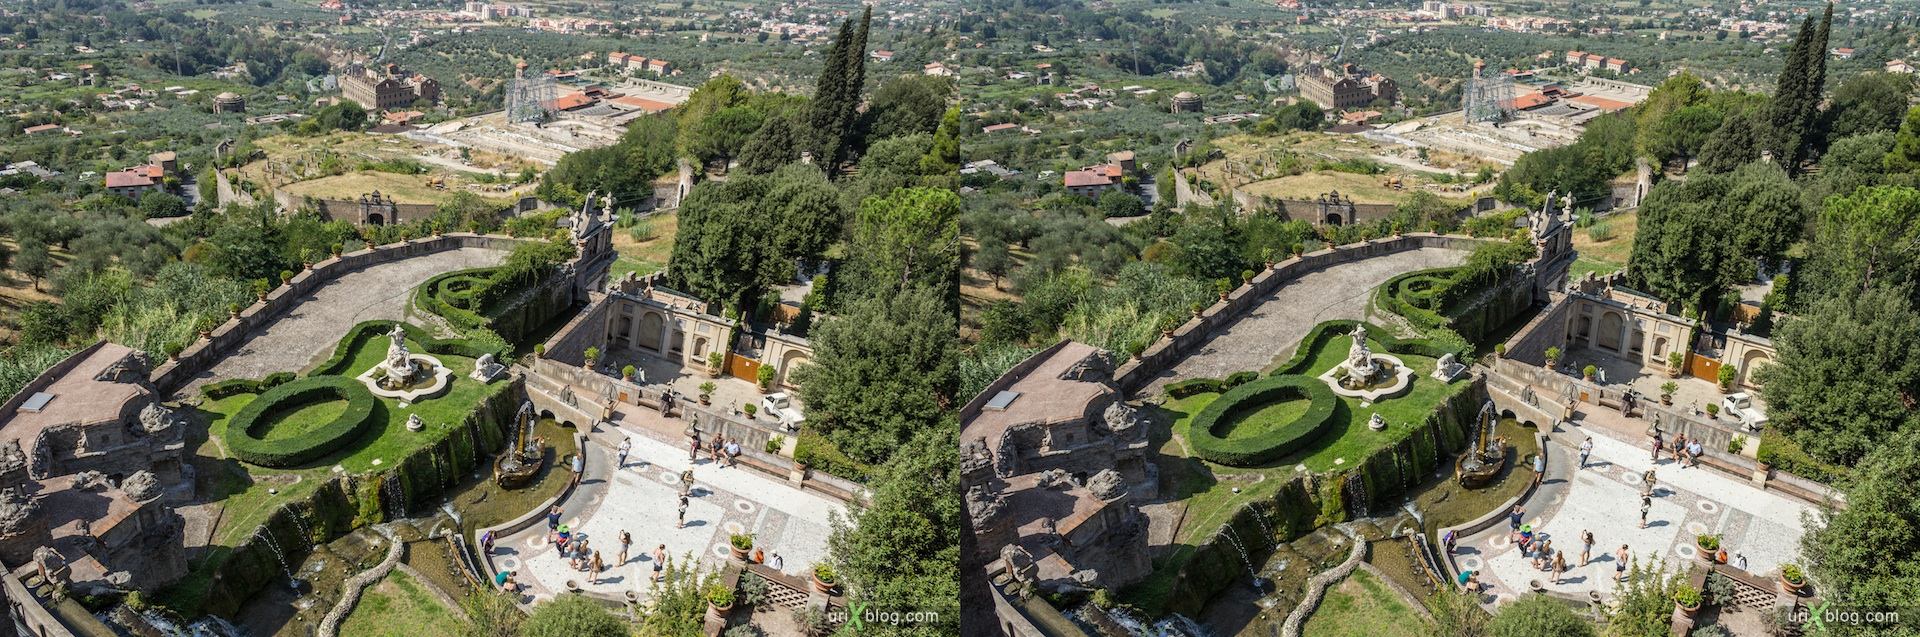 2012, Fountain of Rometta, villa D'Este, Italy, Tivoli, Rome, 3D, stereo pair, cross-eyed, crossview, cross view stereo pair